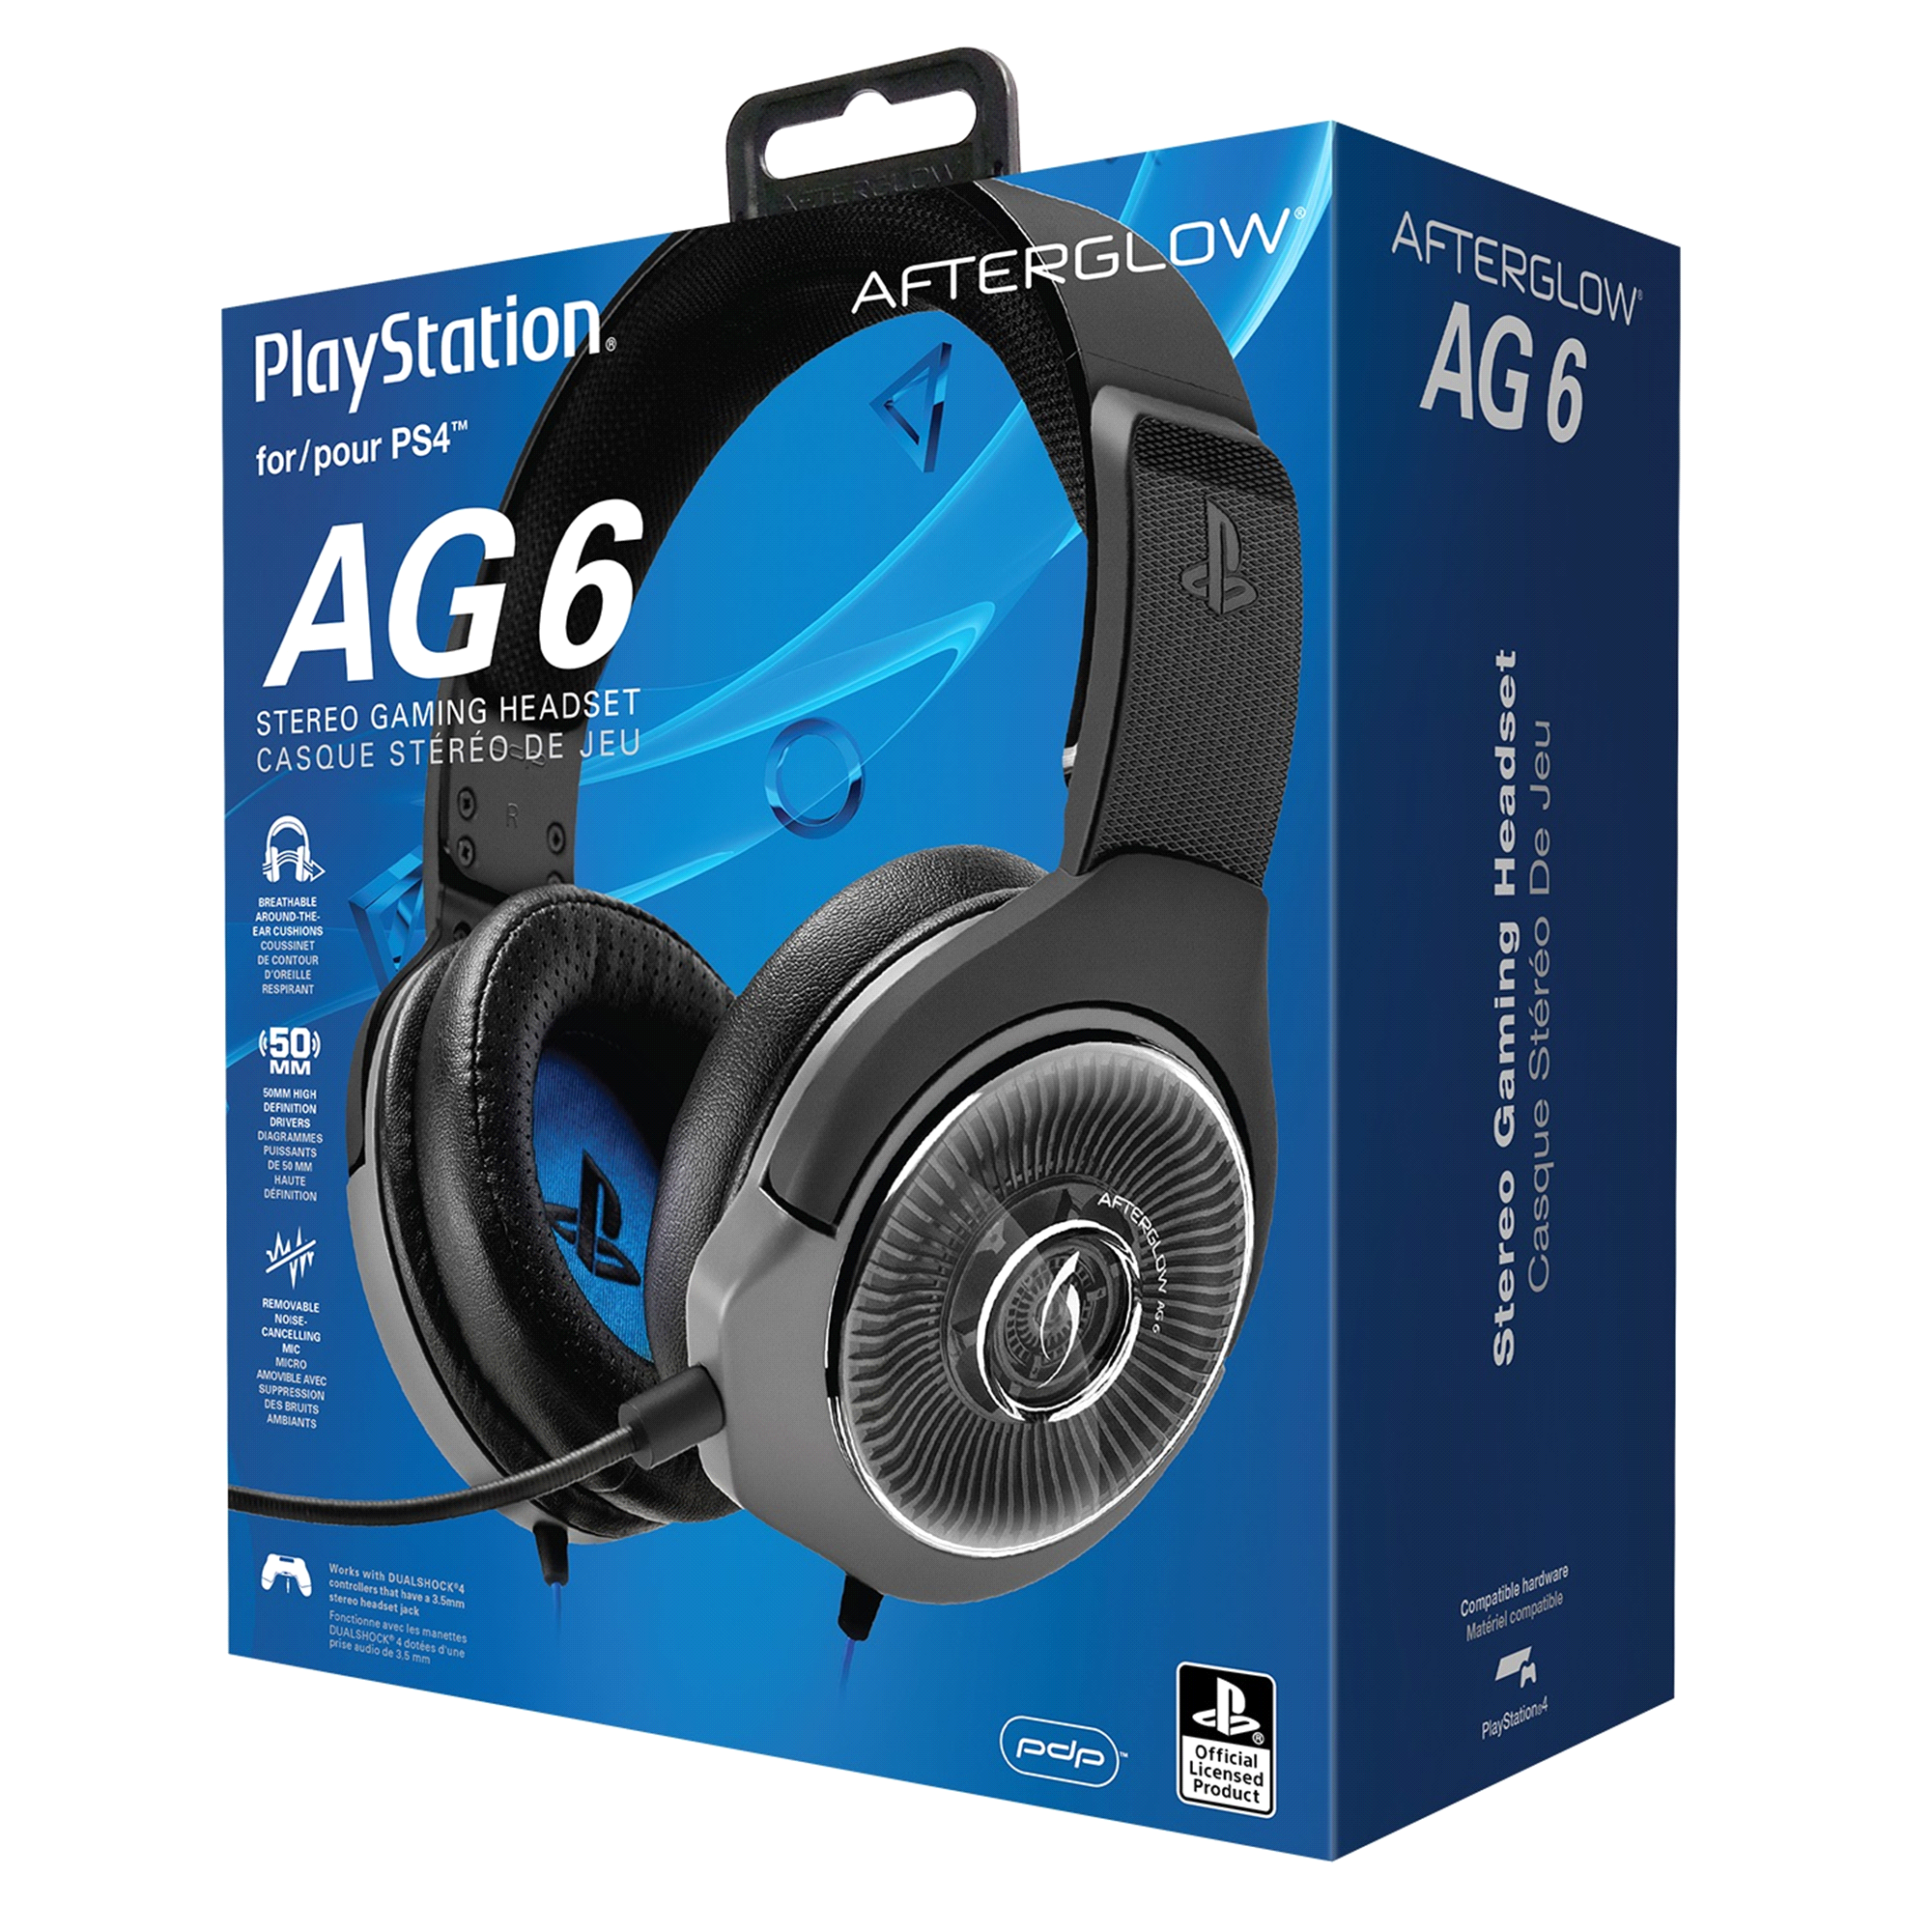 PS4 Afterglow AG 6 Wired Headset  960a46eb7b9b1